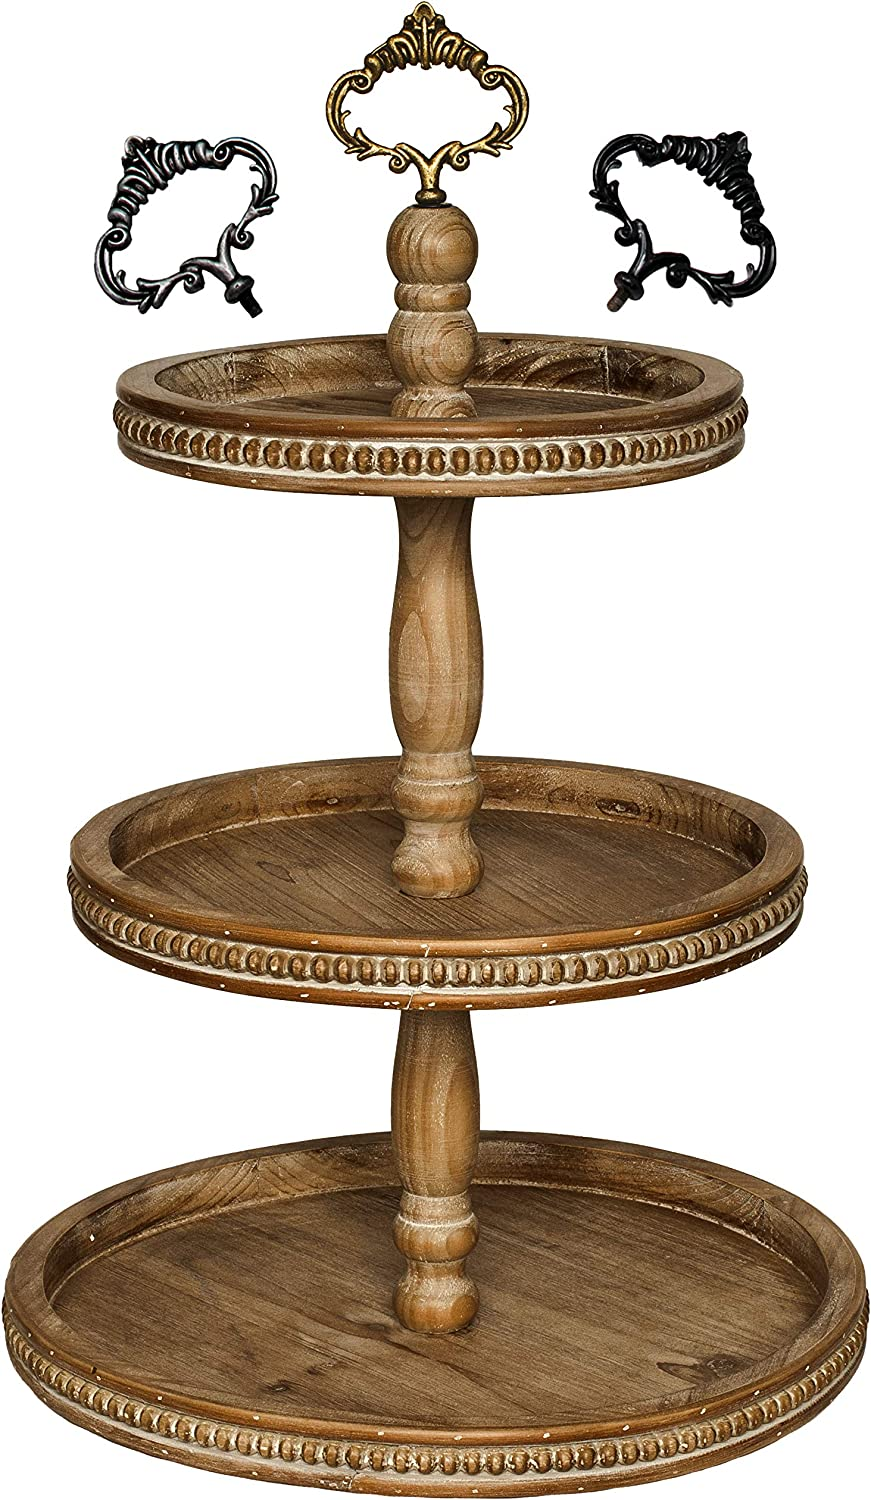 Felt Creative Home Goods 3 Tiered Tray Wooden Serving Stand Large Beaded Tray for Home Decor Display Farmhouse Country Decoration Kitchen or Dining. Includes 3 Finial Custom Handles (Brown)